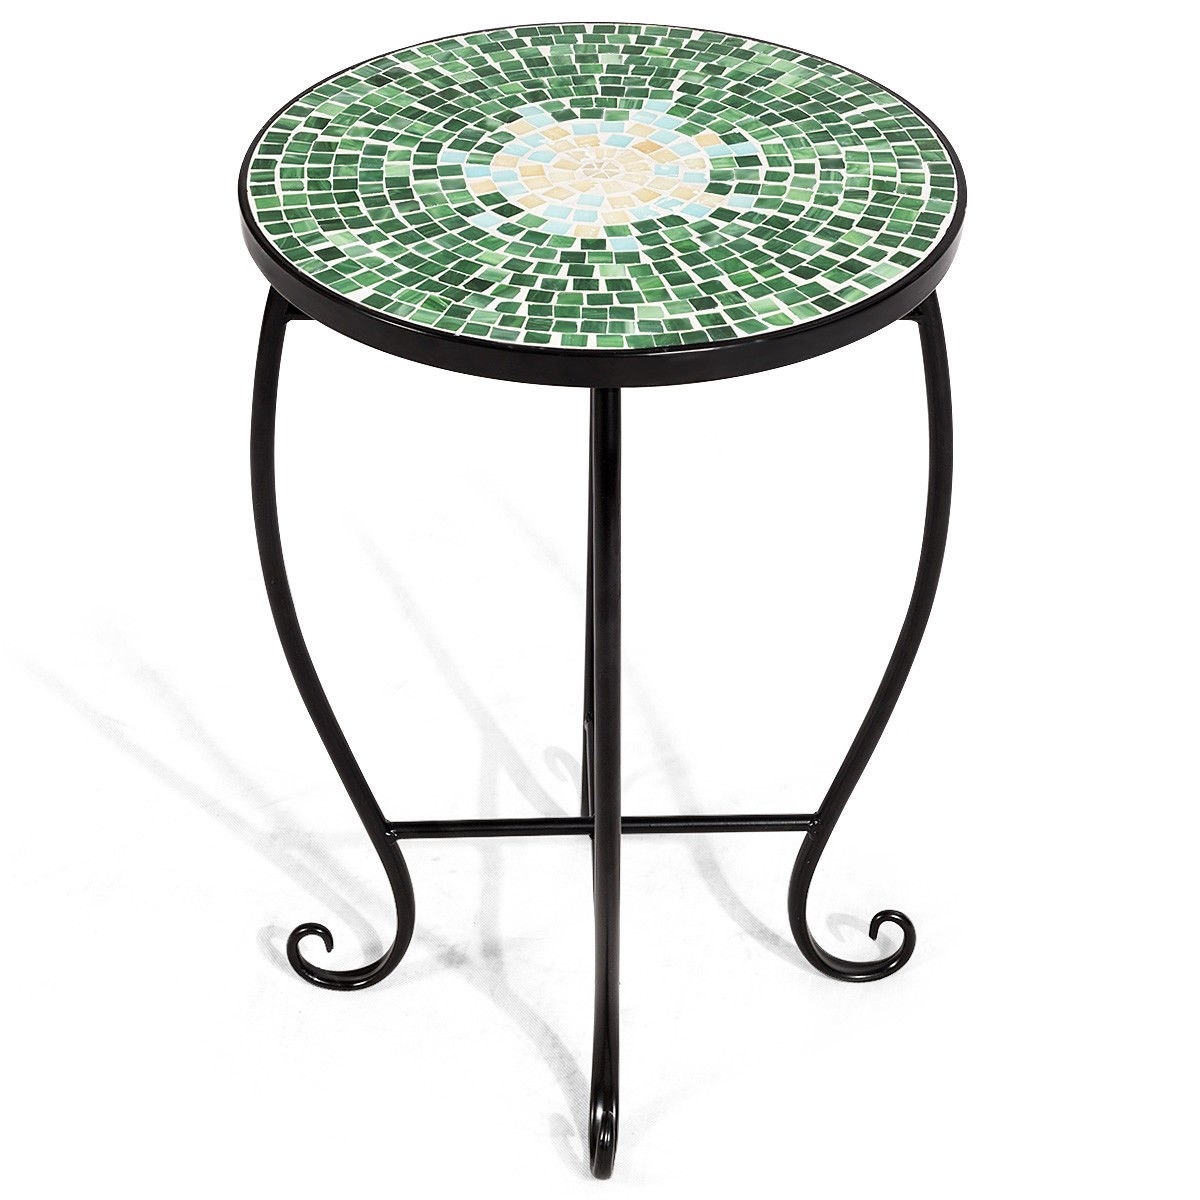 way outdoor indoor accent table plant stand scheme metal garden steel green ikea high acrylic side with wheels wooden and chairs target meyda lamp shades white marble top small